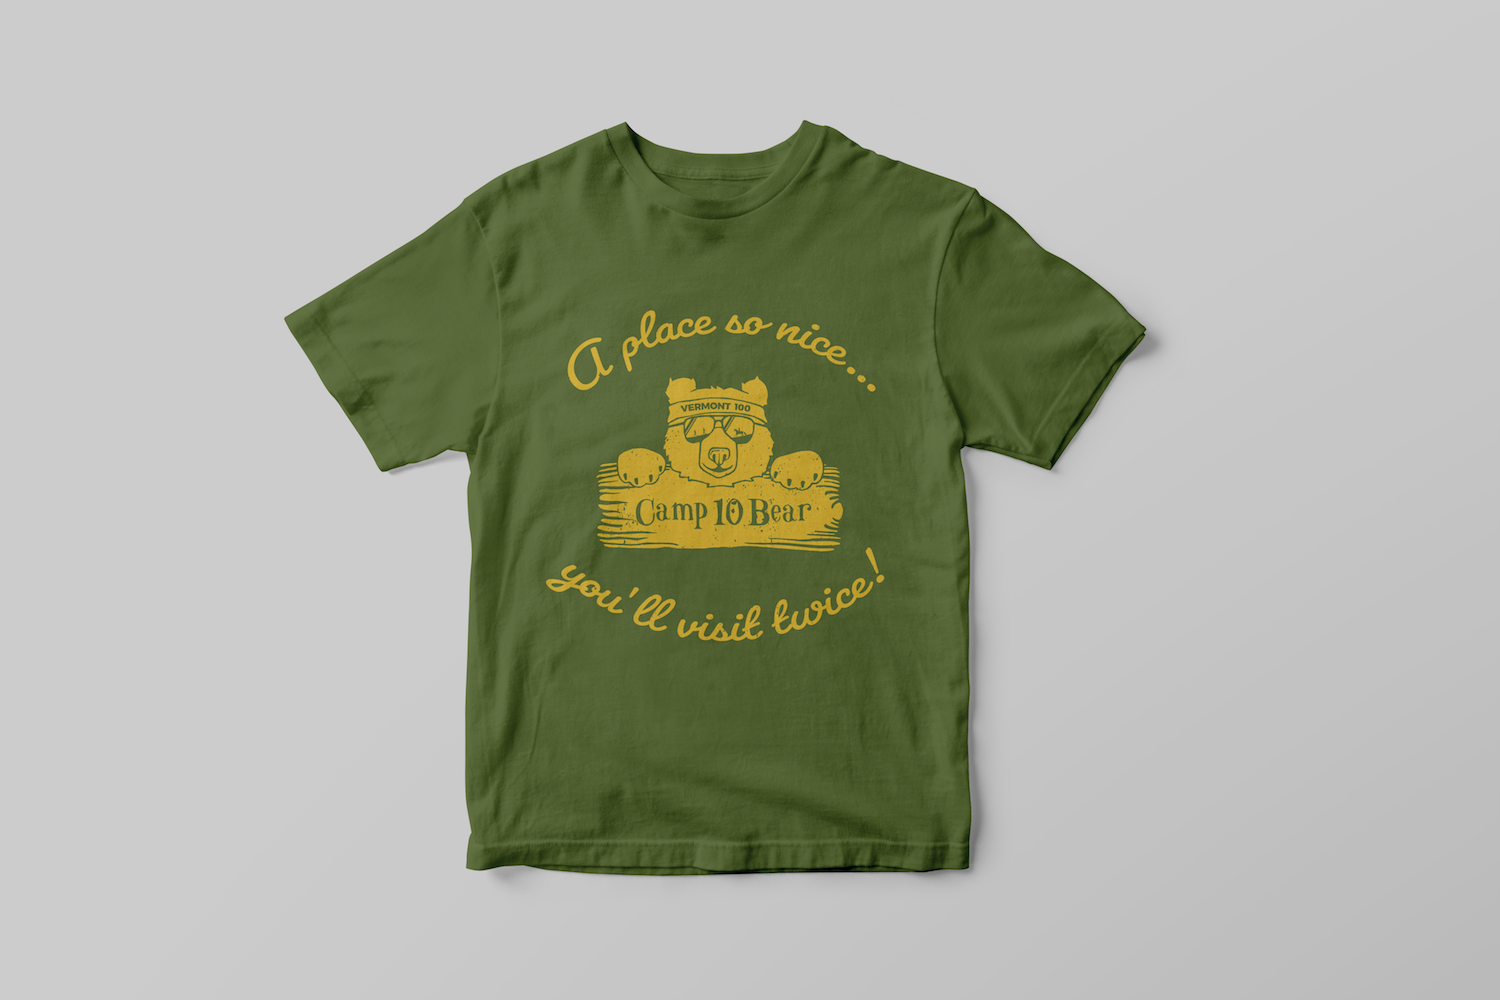 Vermont 100 - Project - Camp 10 Bear Green T-Shirt Design Apparel Example